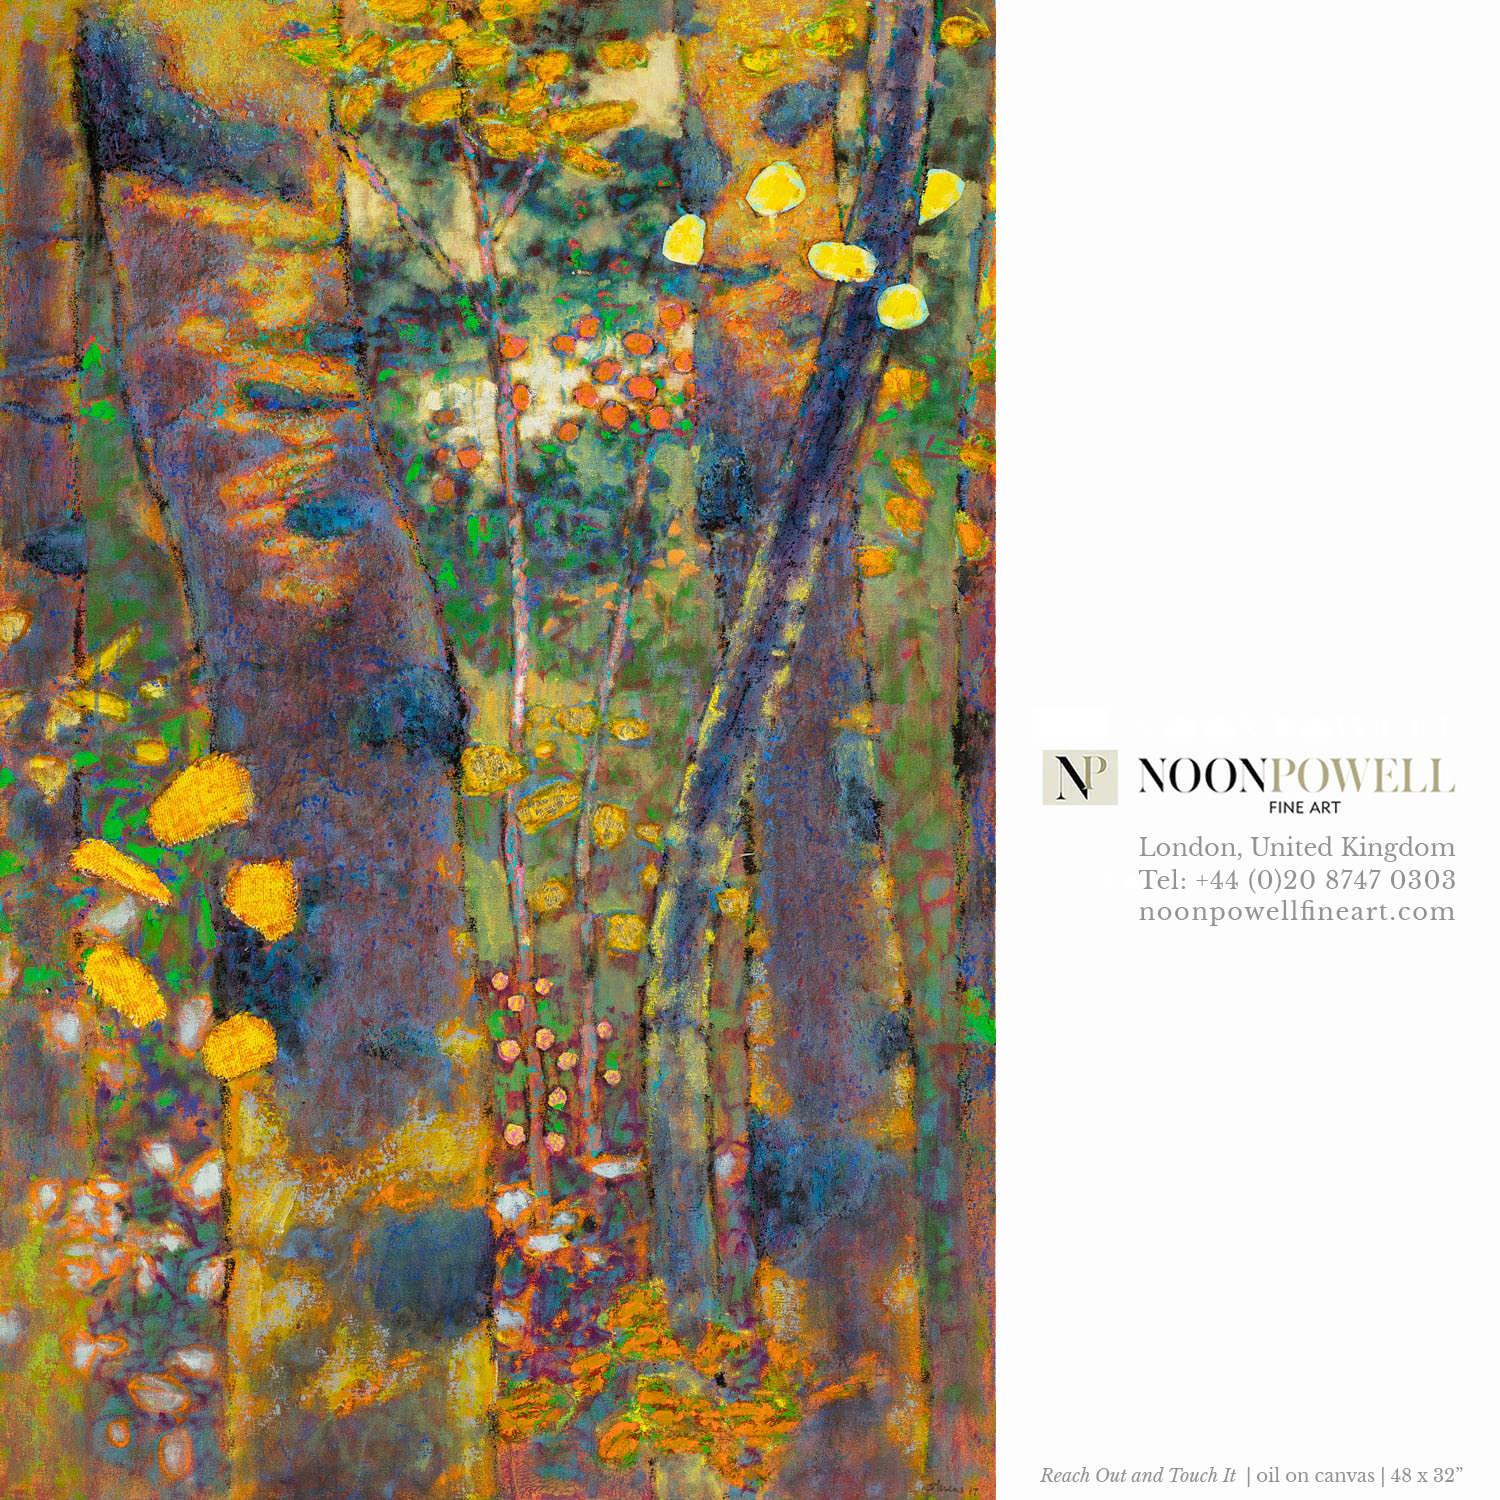 Rick's work will be represented at NoonPowell Fine Art in London, U.K.